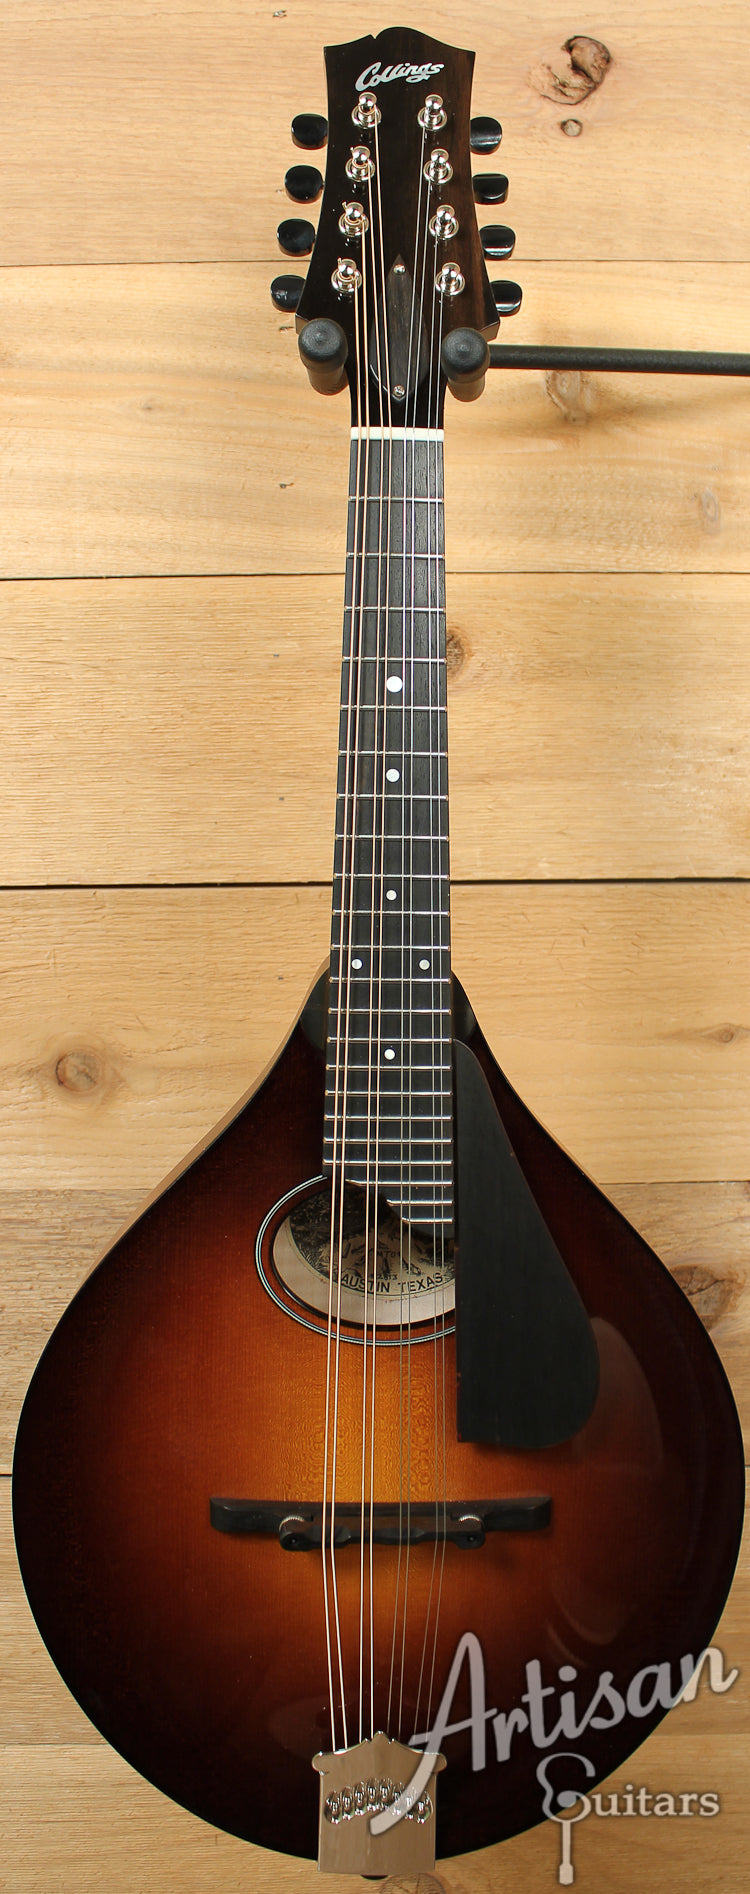 Collings MT O Oval Hole Mandolin Sunburst Gloss Top with Flame Maple Back and Sides ID-7287